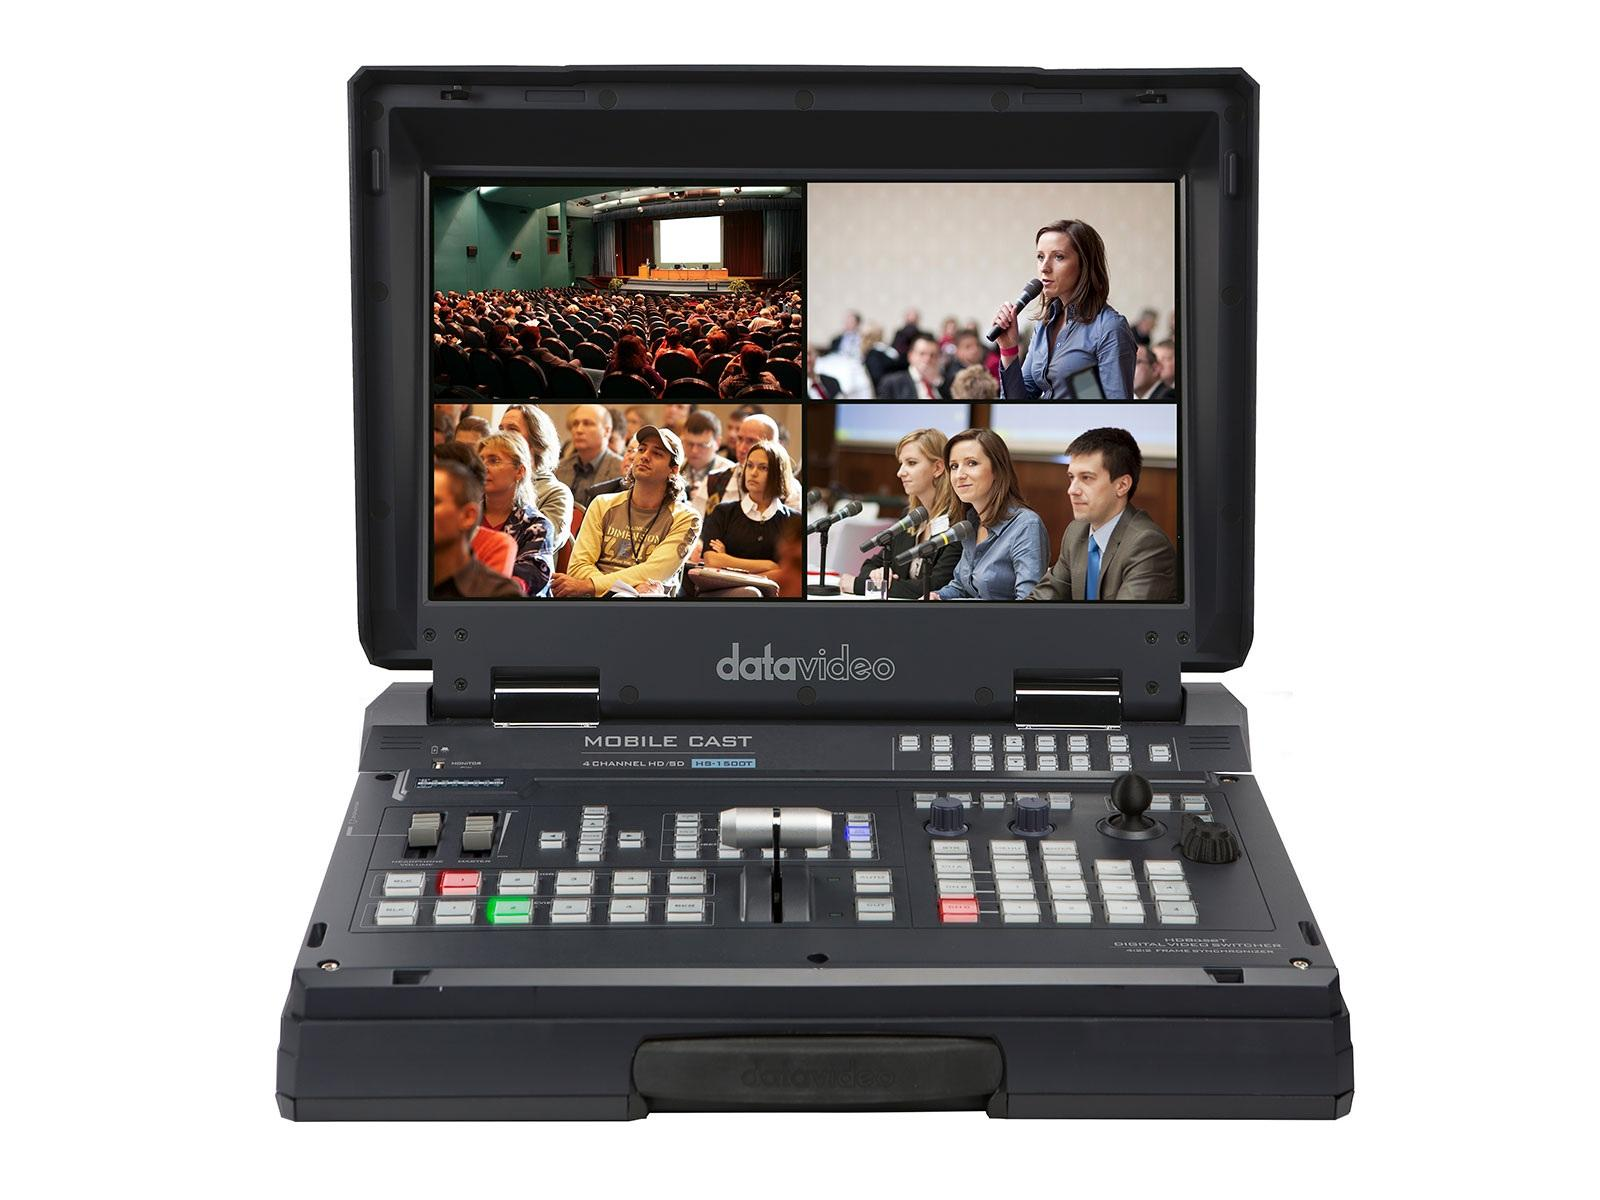 HS-1500T 4-Channel HDBaseT/HDMI Portable Production Switcher by Datavideo